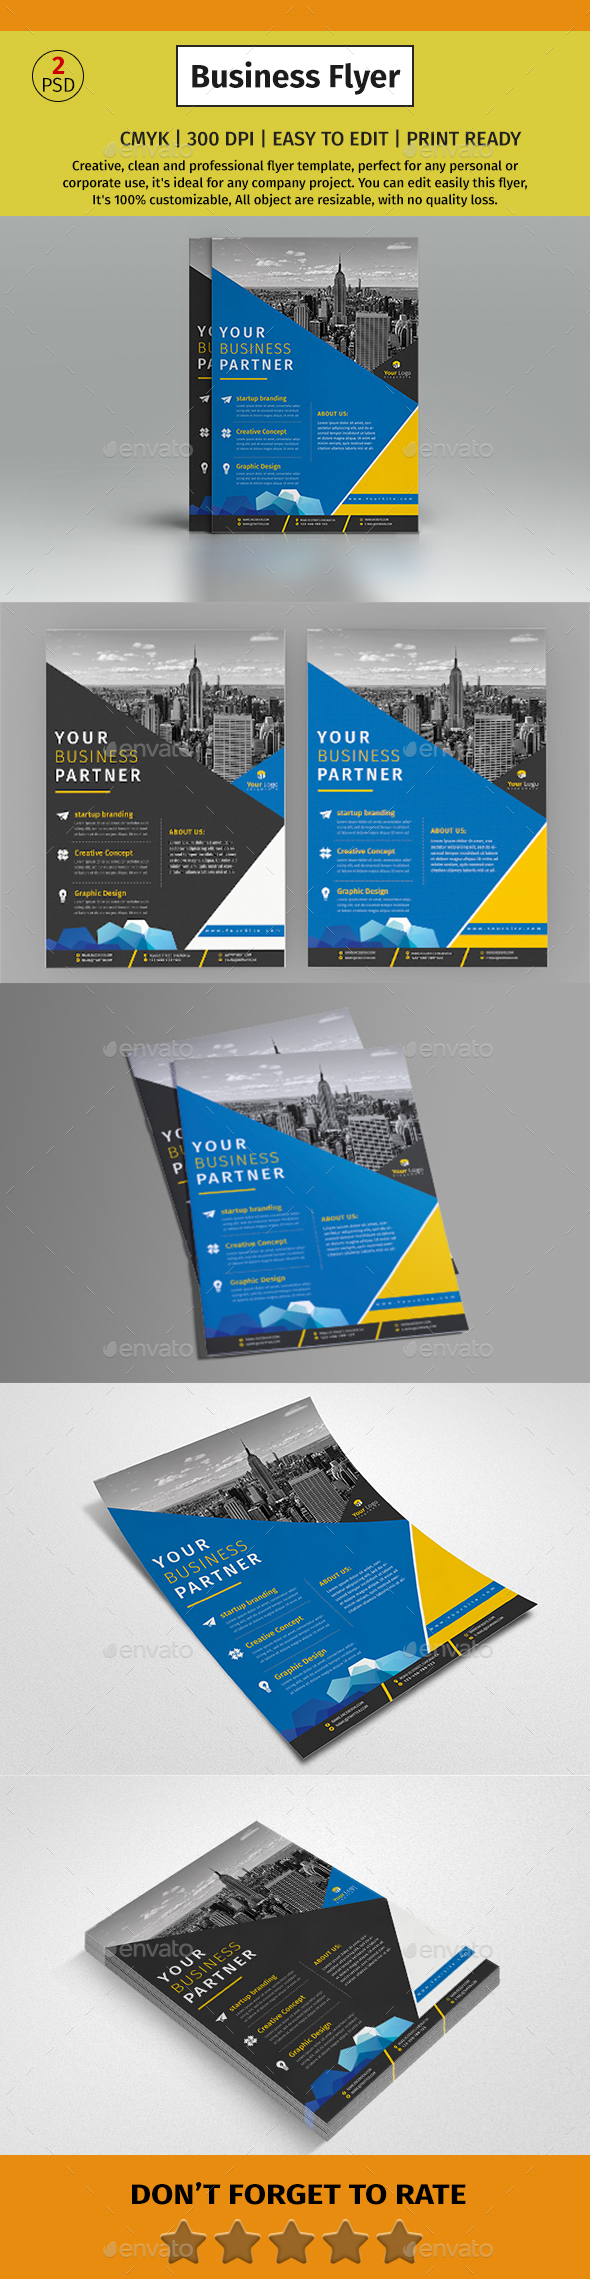 A4 Corporate Business Flyer #166 - Corporate Flyers